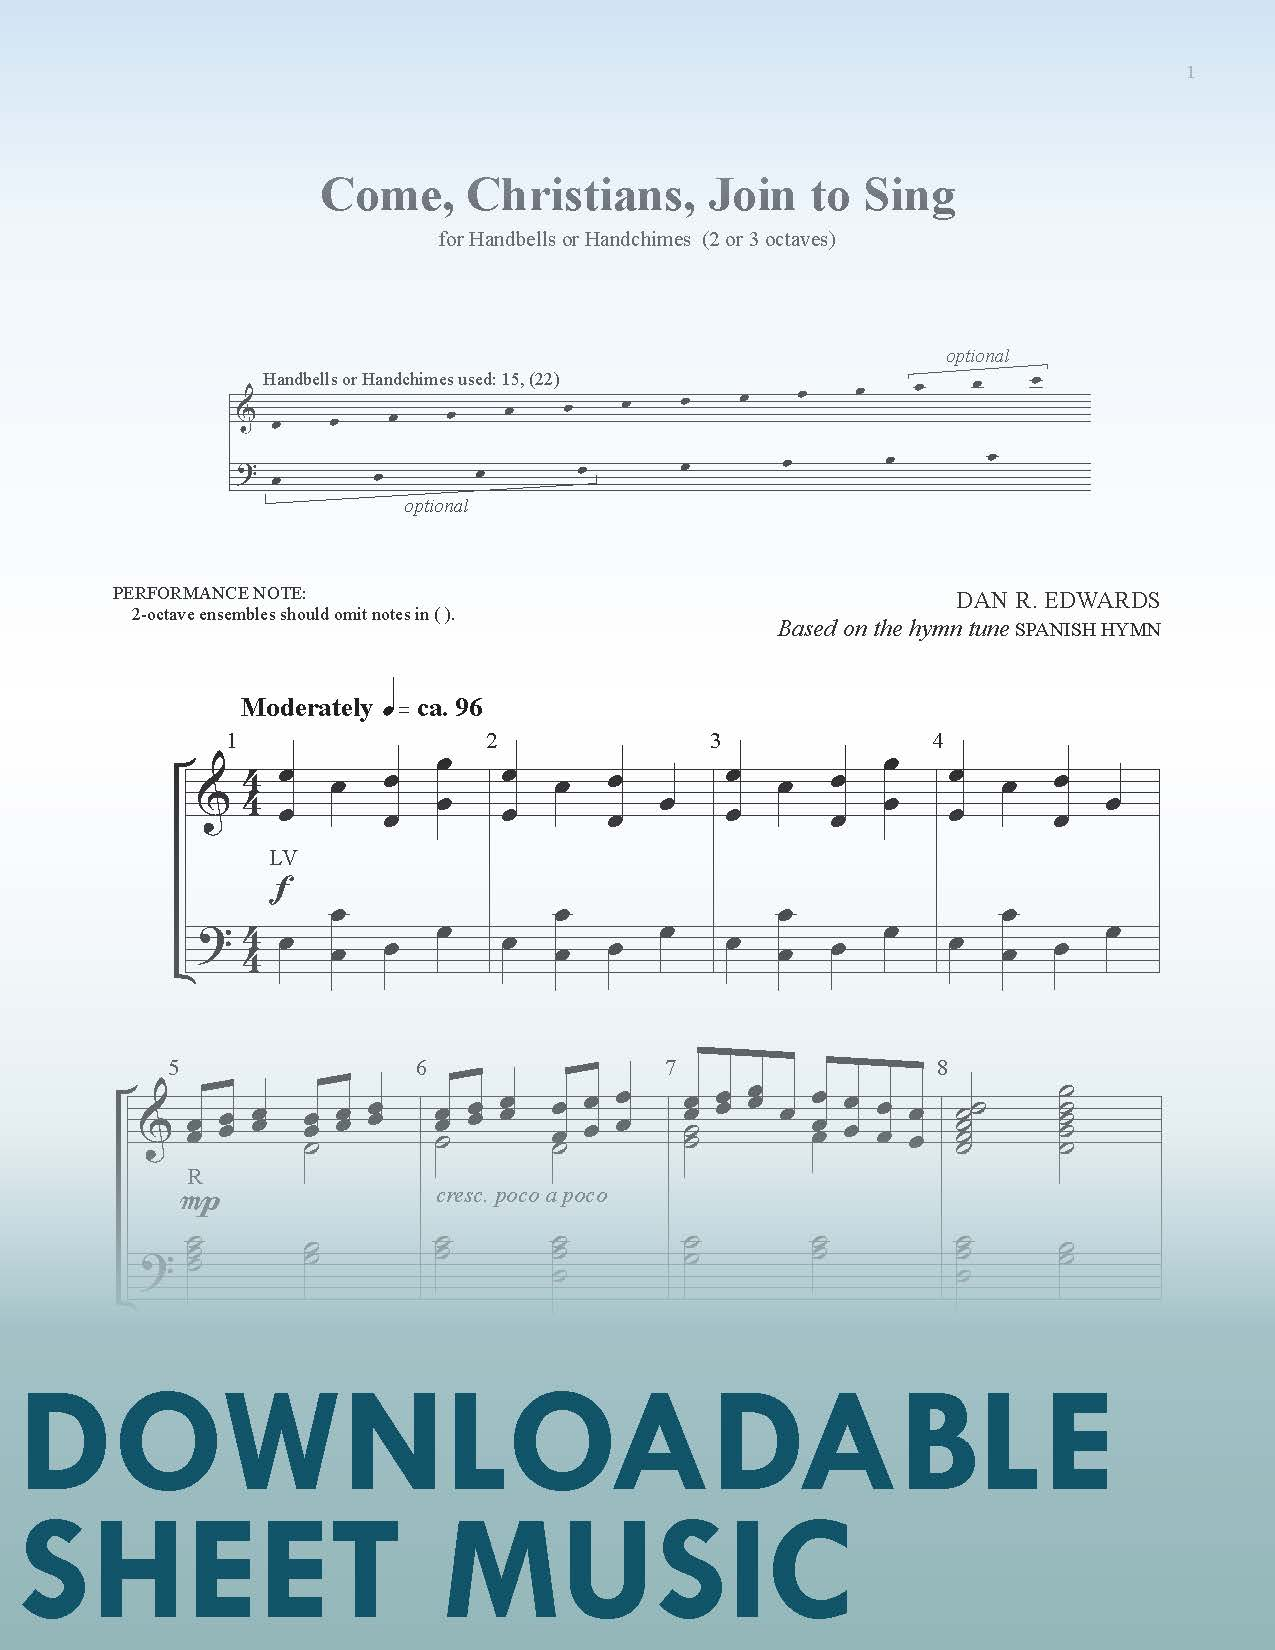 Come, Christians, Join to Sing - Digital Download